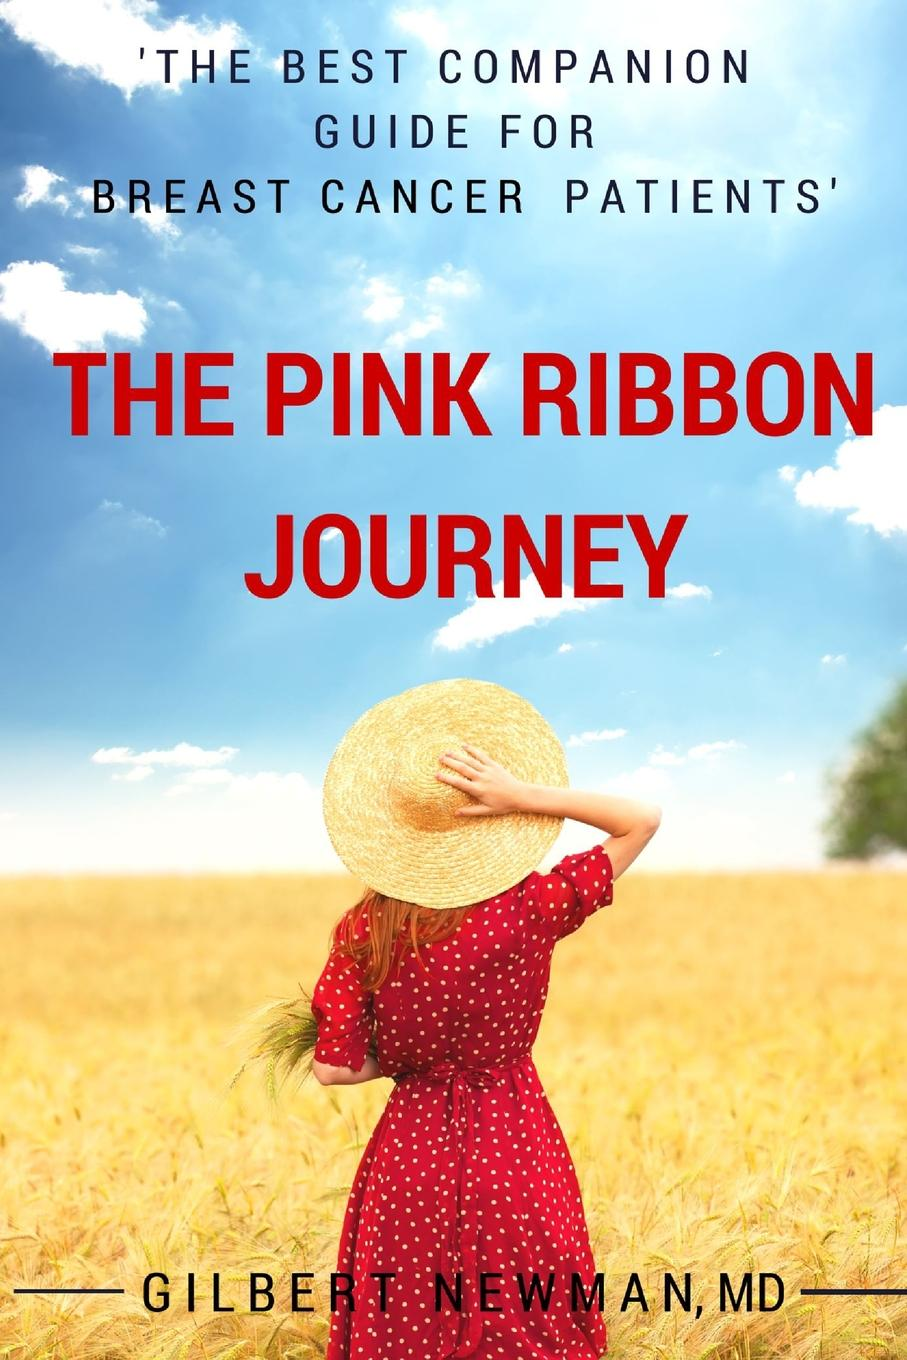 MD Gilbert Newman The Pink Ribbon Journey. The Best Companion Guide for Breast Cancer Patients